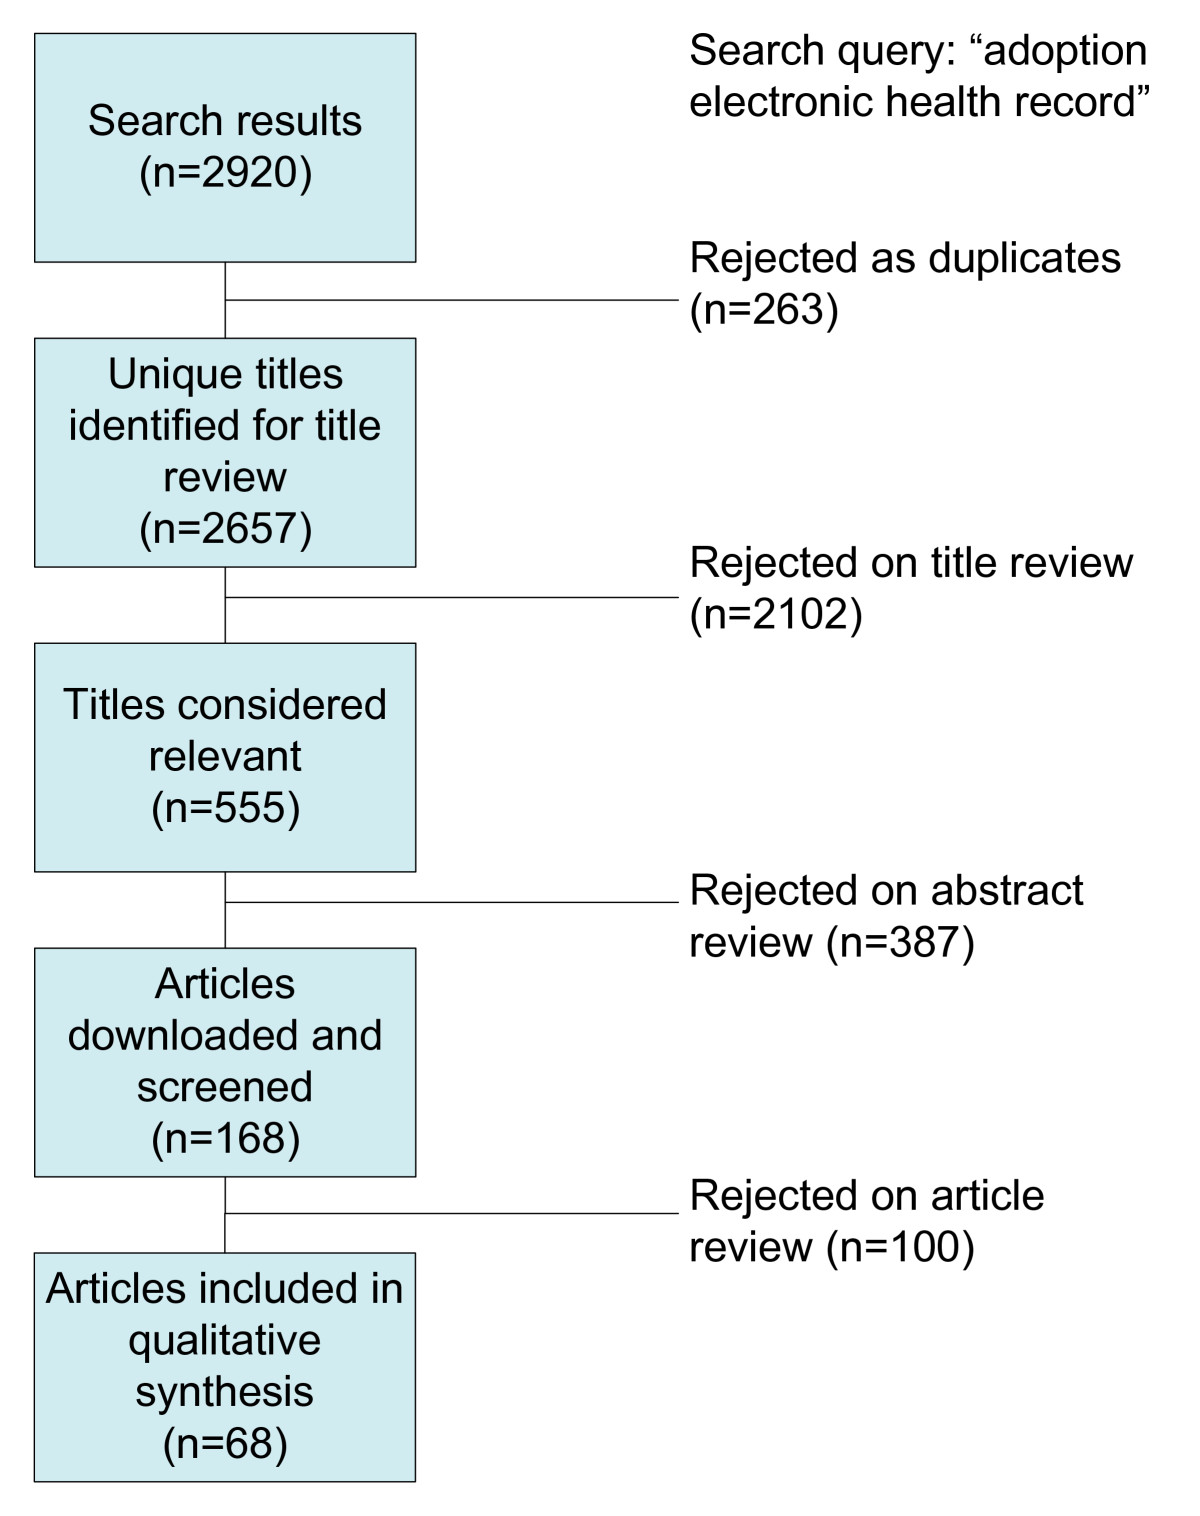 http://static-content.springer.com/image/art%3A10.1186%2F1472-6947-10-60/MediaObjects/12911_2010_Article_361_Fig4_HTML.jpg